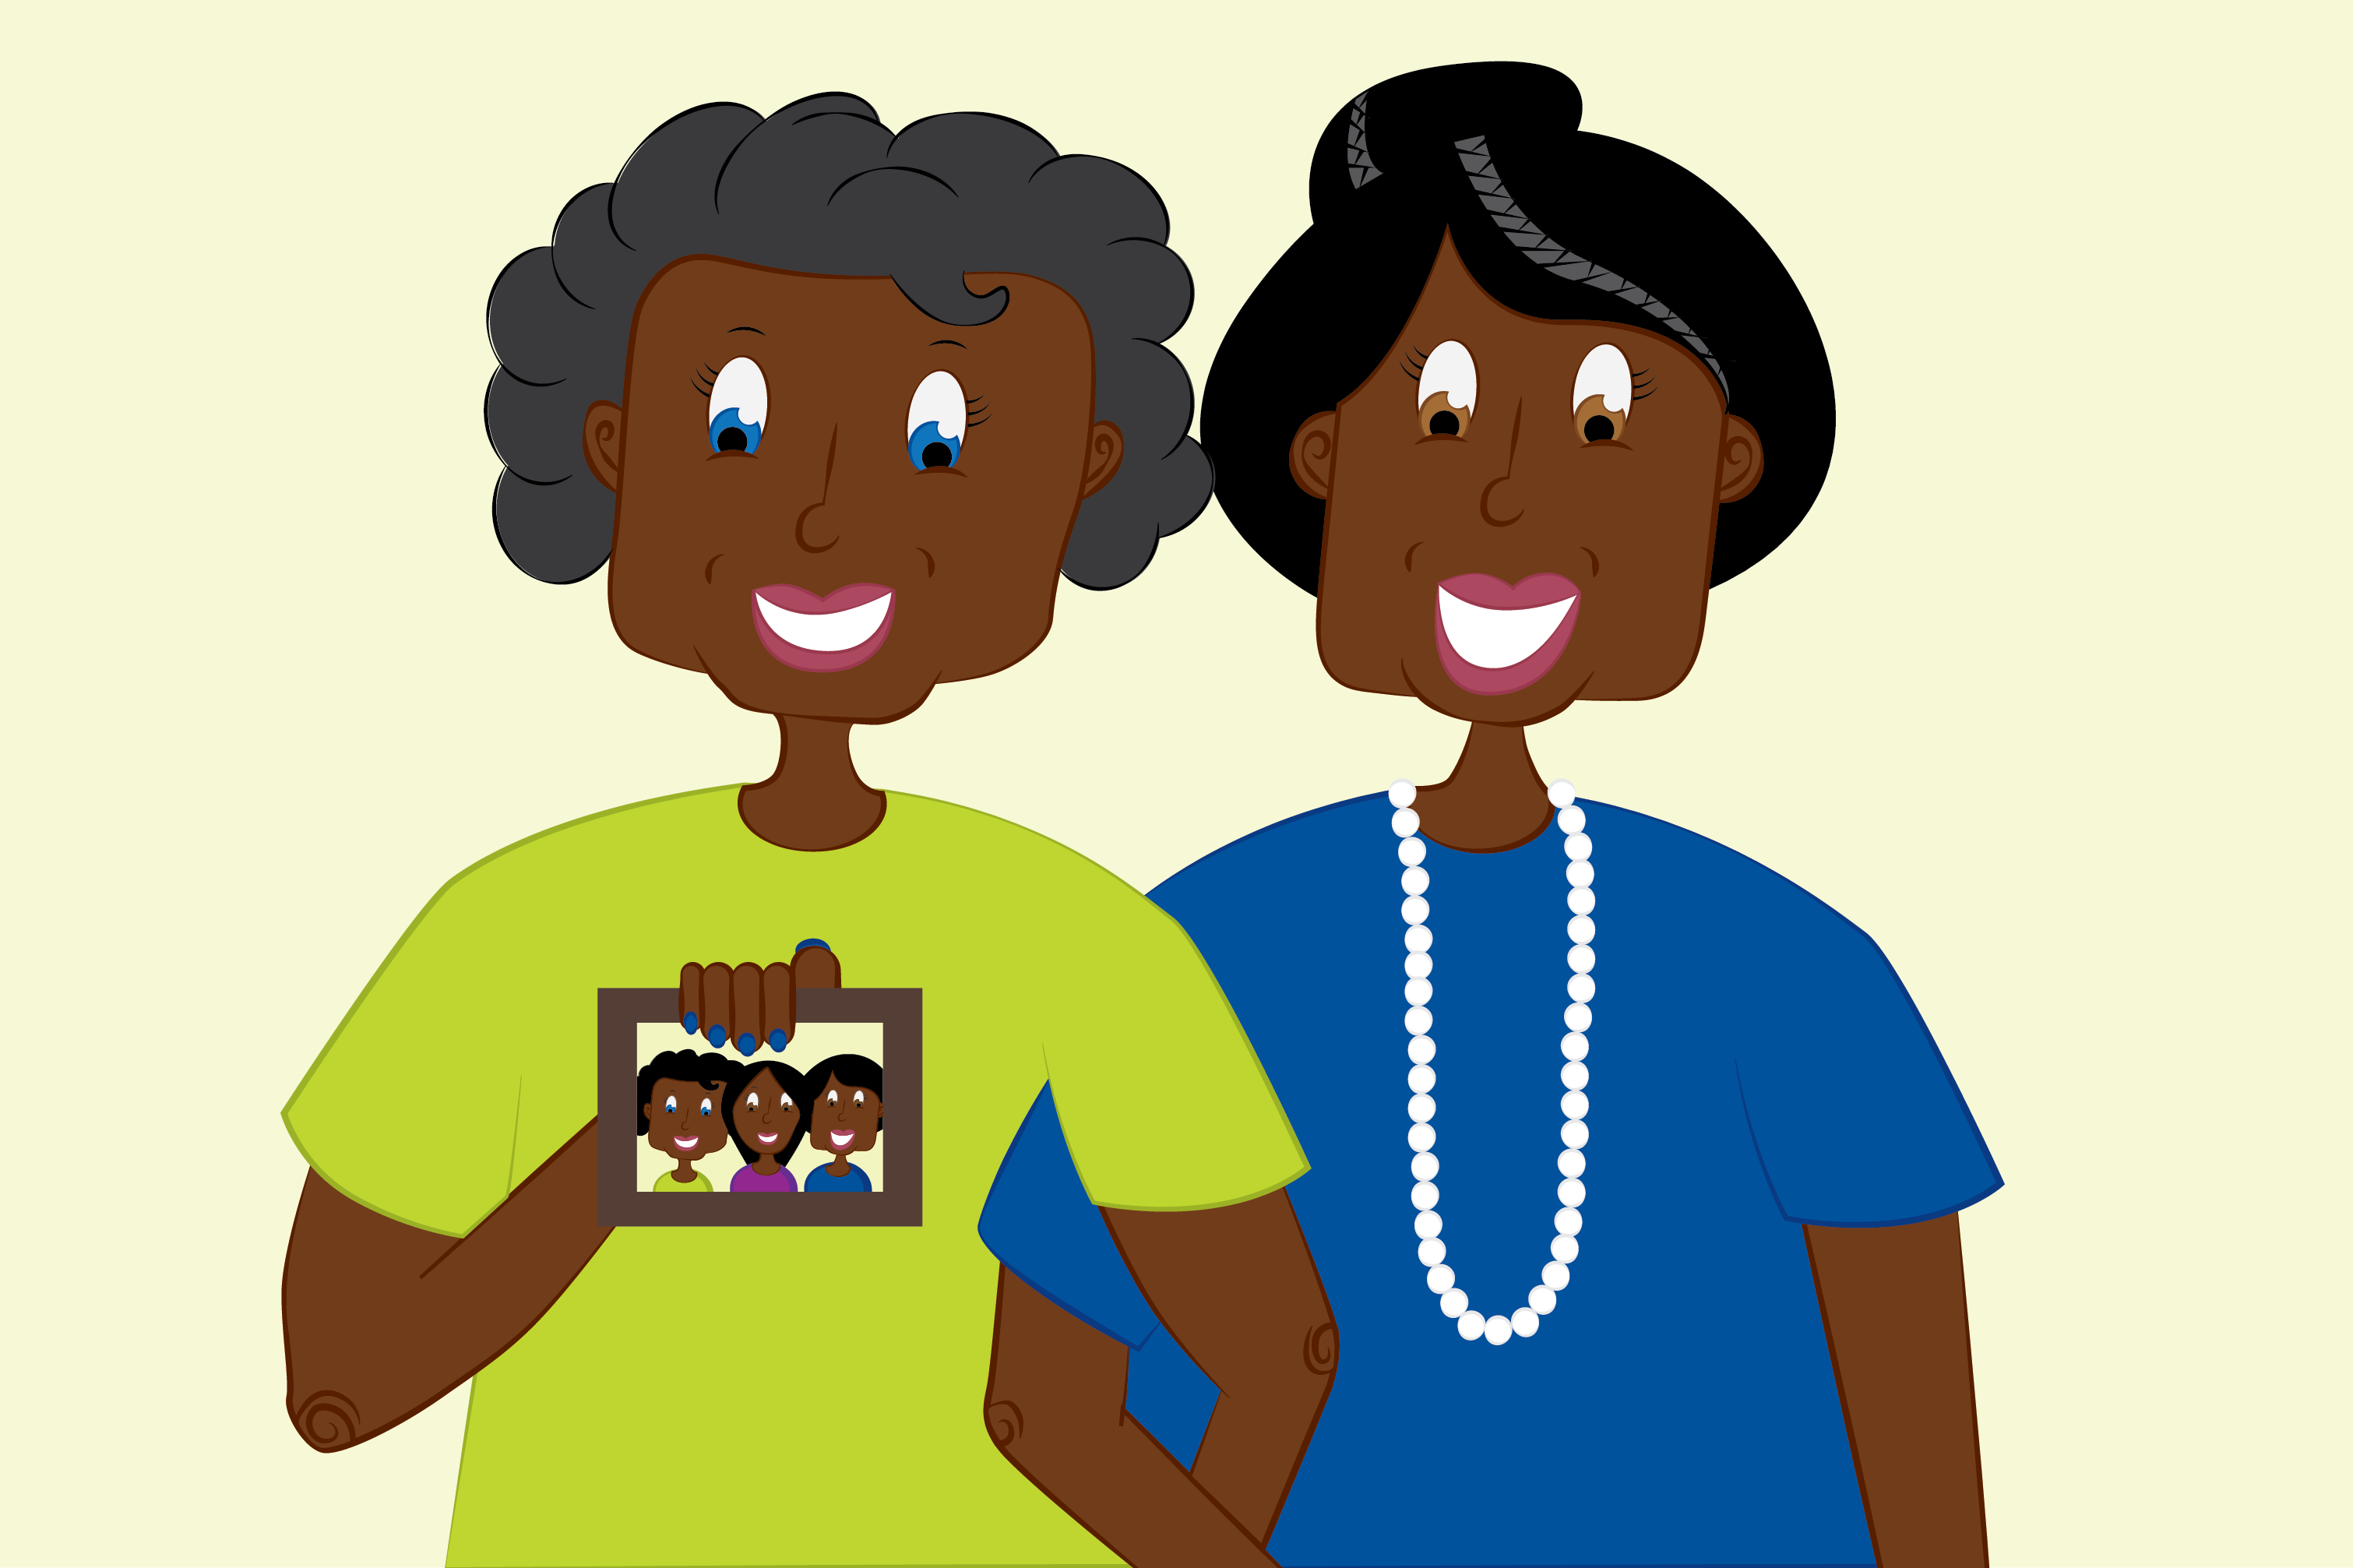 an illustration of two elderly women holding a photo of three people